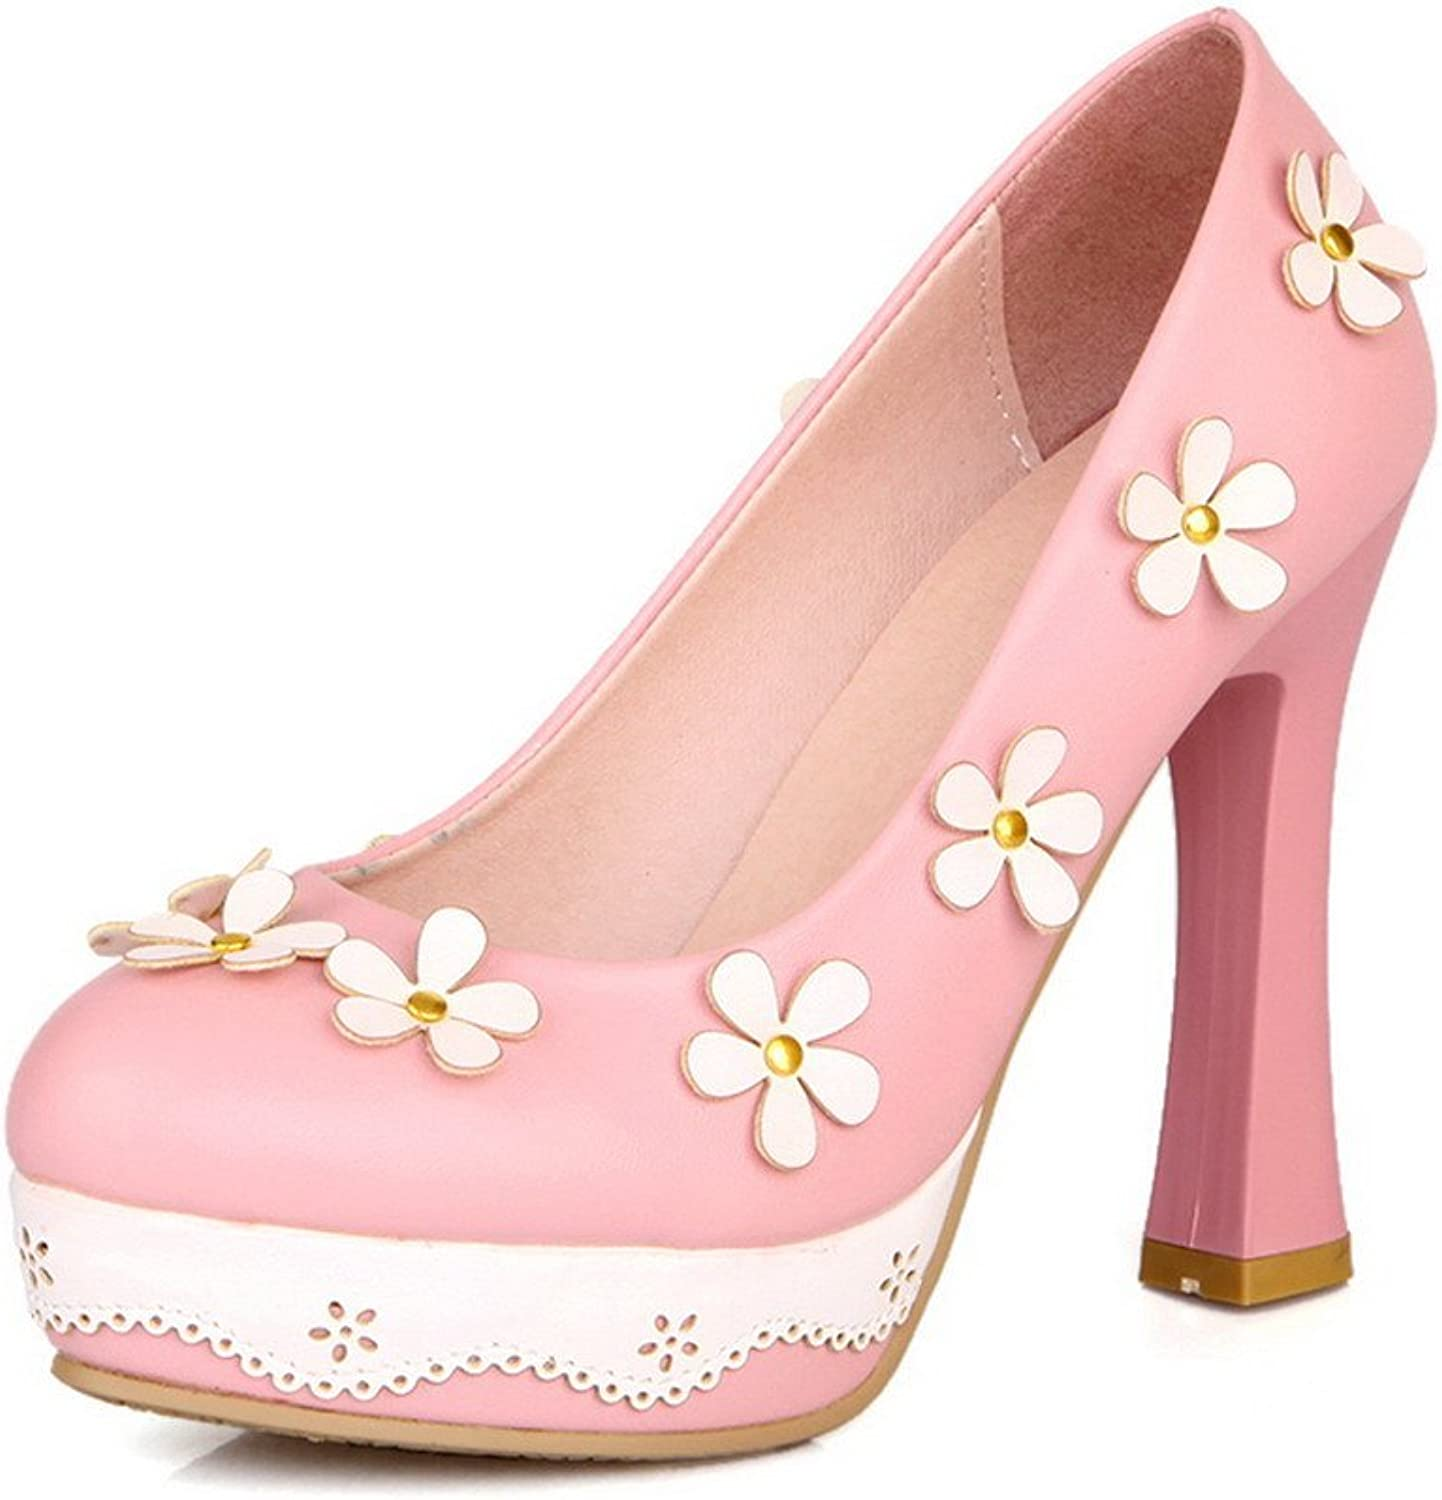 WeiPoot Womens Closed Round Toe High Heel Soft Material PU Solid Pumps with Flowers